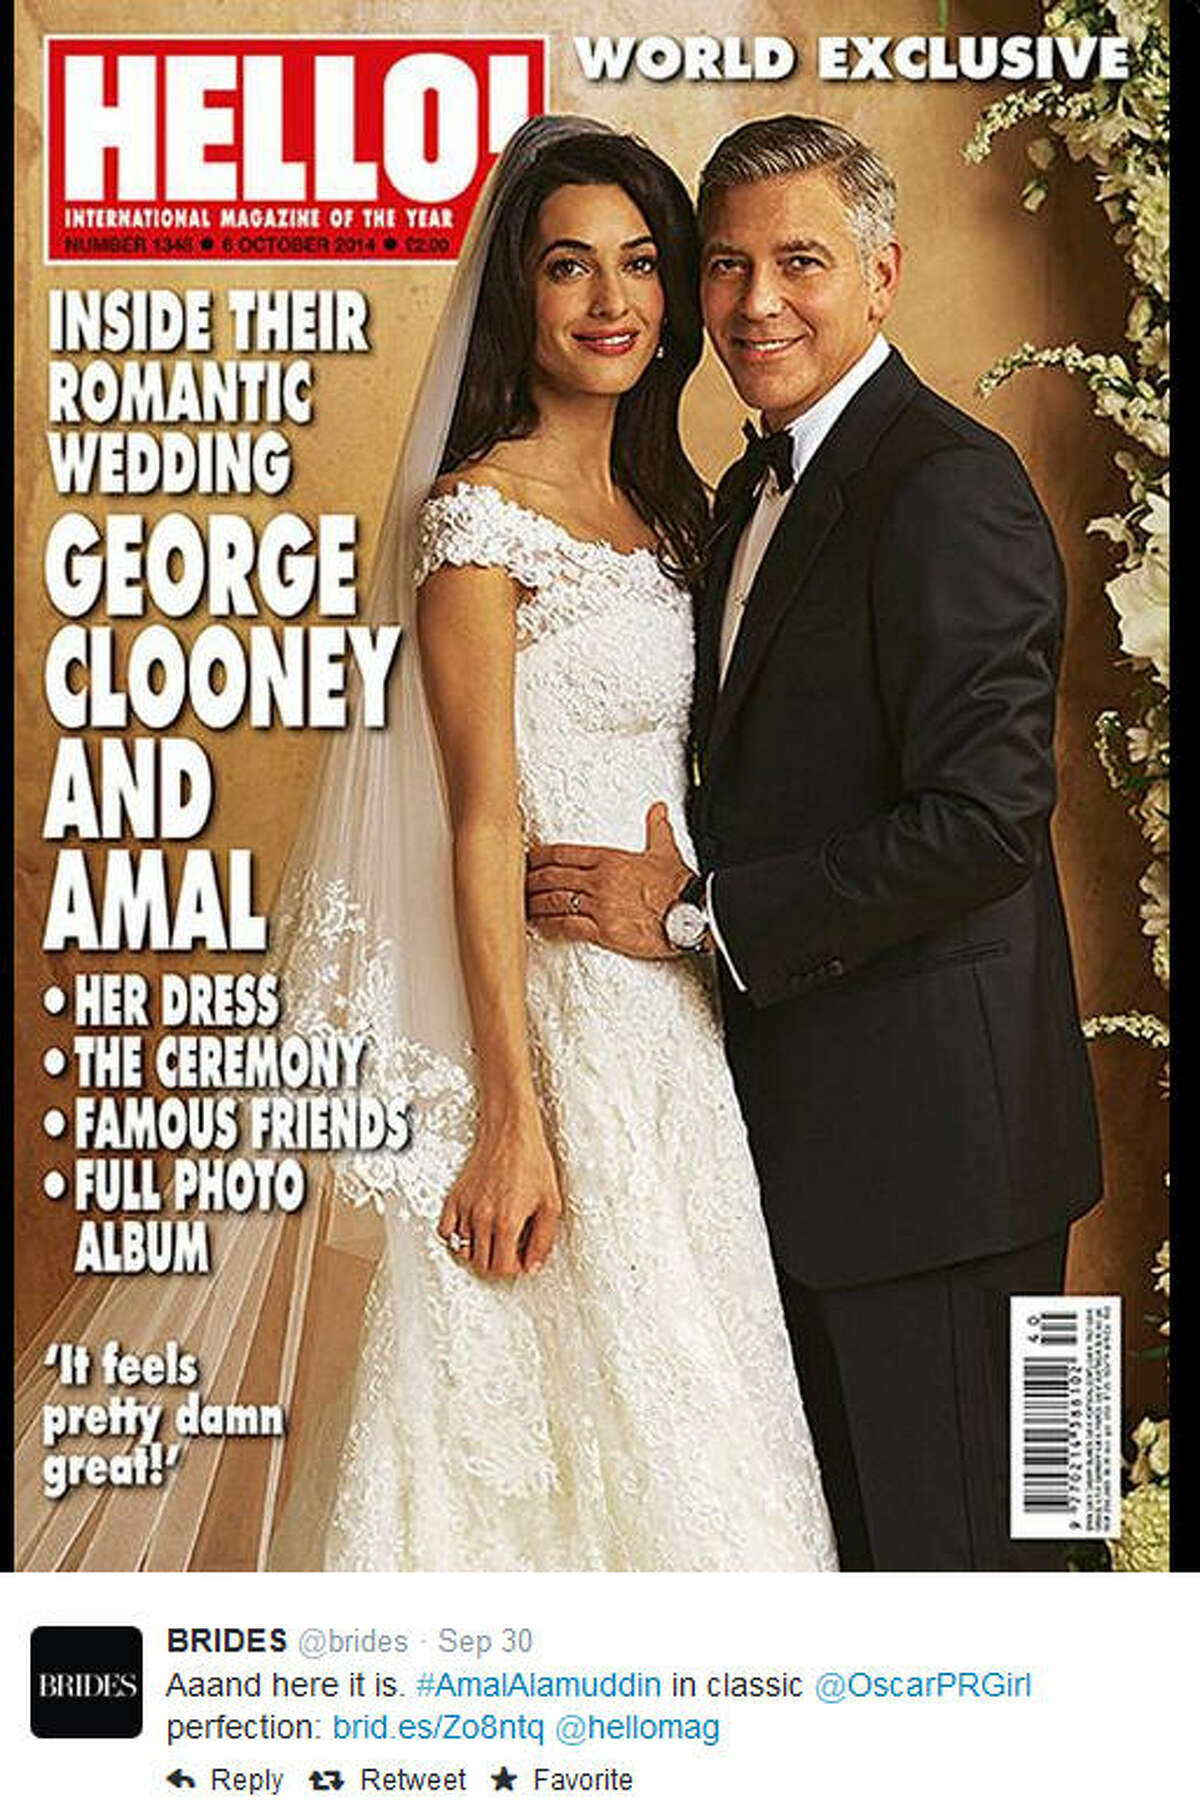 Brides around the world are feasting their eyes on the wedding dress Amal Alamuddin's wore to marry George Clooney on Sept. 27. Gorgeous as it is, she's not the only famous Mrs. with good taste. Take a look at what other stars said 'I do' in on their big day.